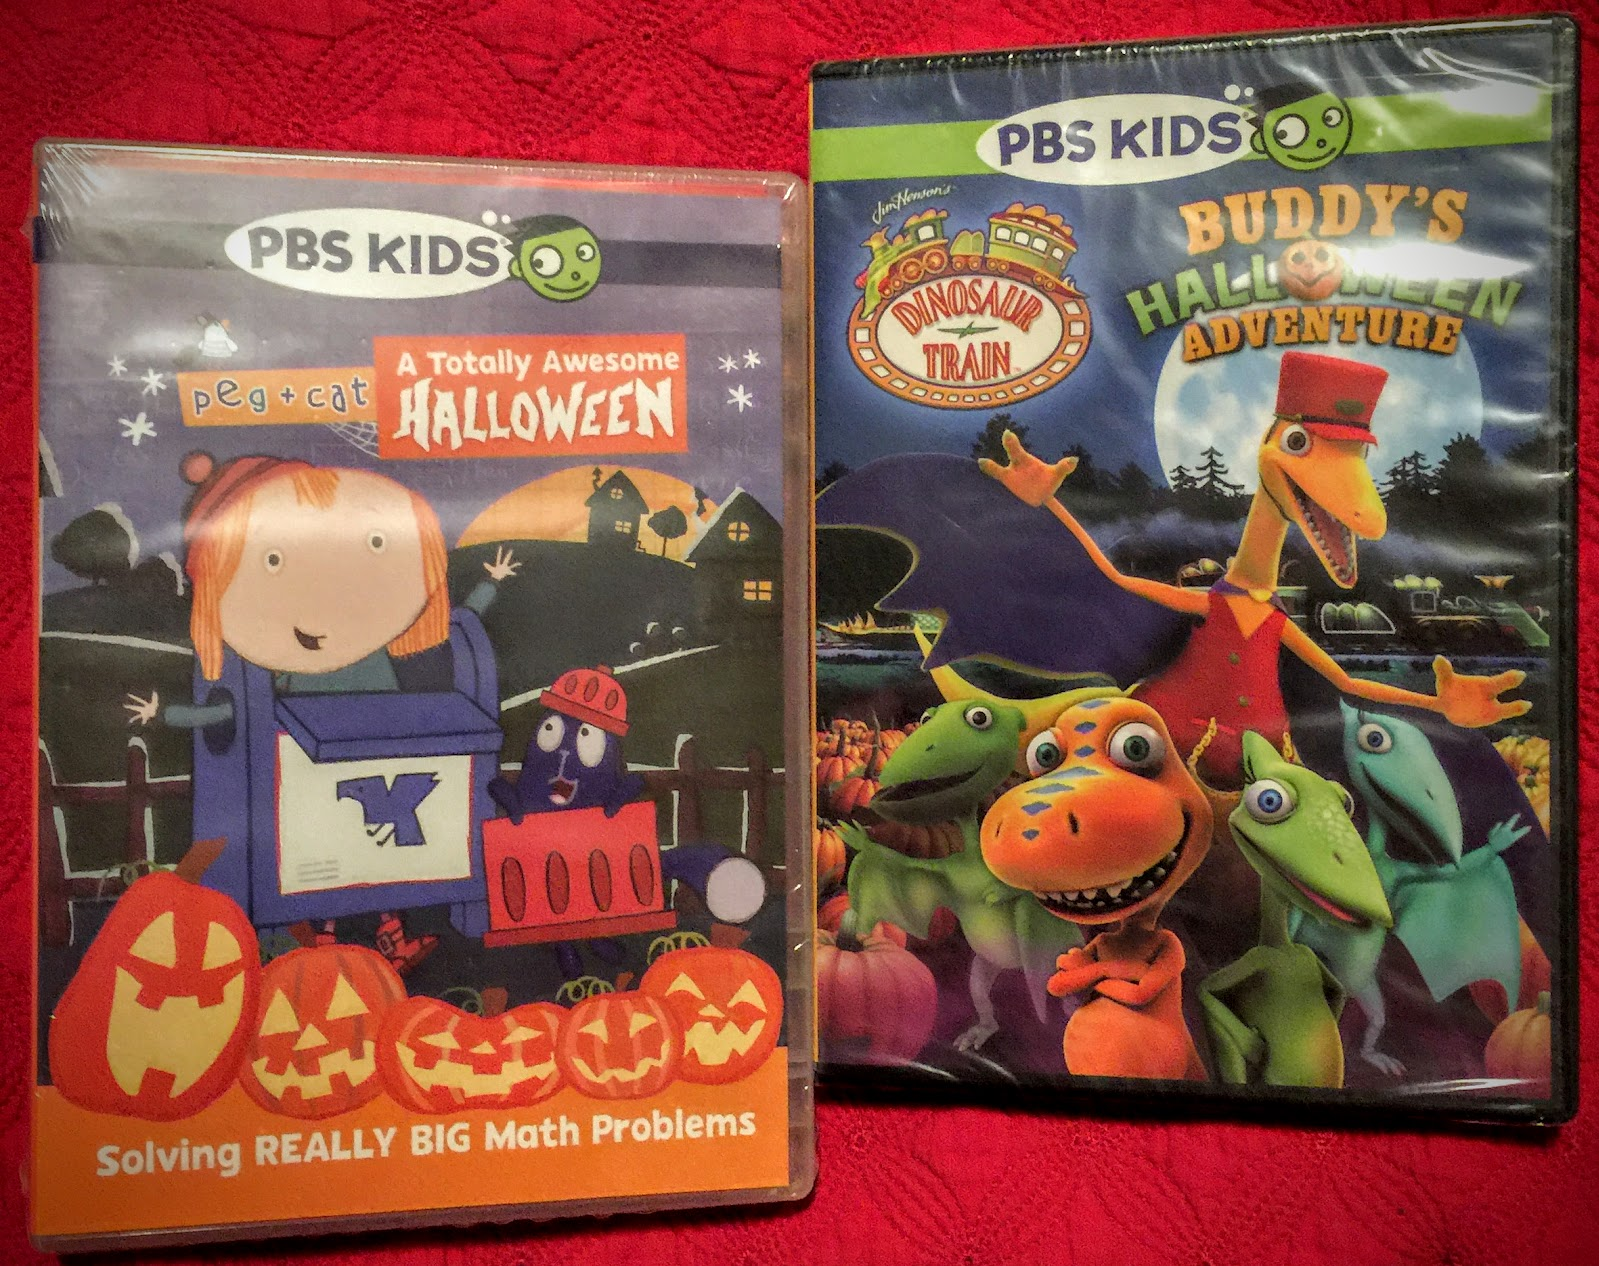 Pbs Kids Halloween Dvd.Day To Day Moments Children S Dvd Options For Fall Road Trips